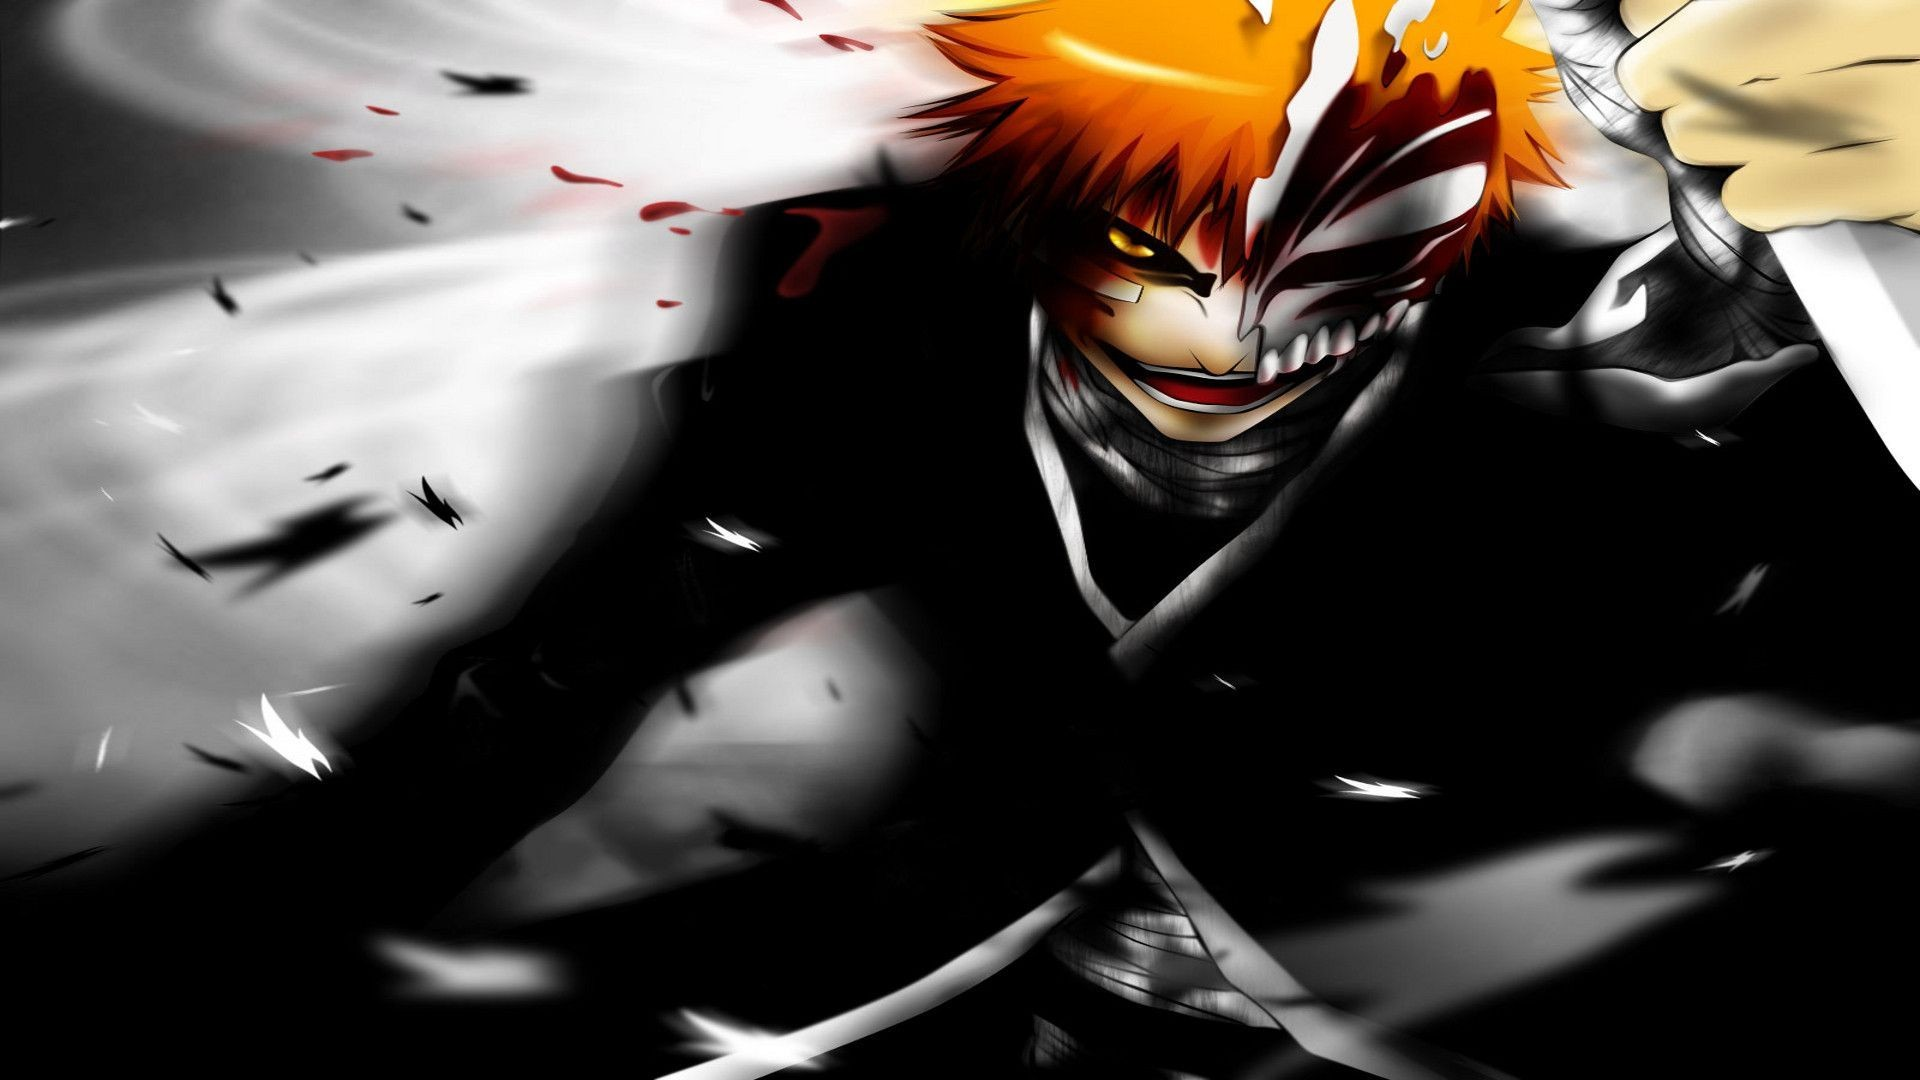 1920x1080 Bleach Wallpapers Images with High Resolution Wallpaper d Ichigo Wallpaper  Bleach Wallpapers)